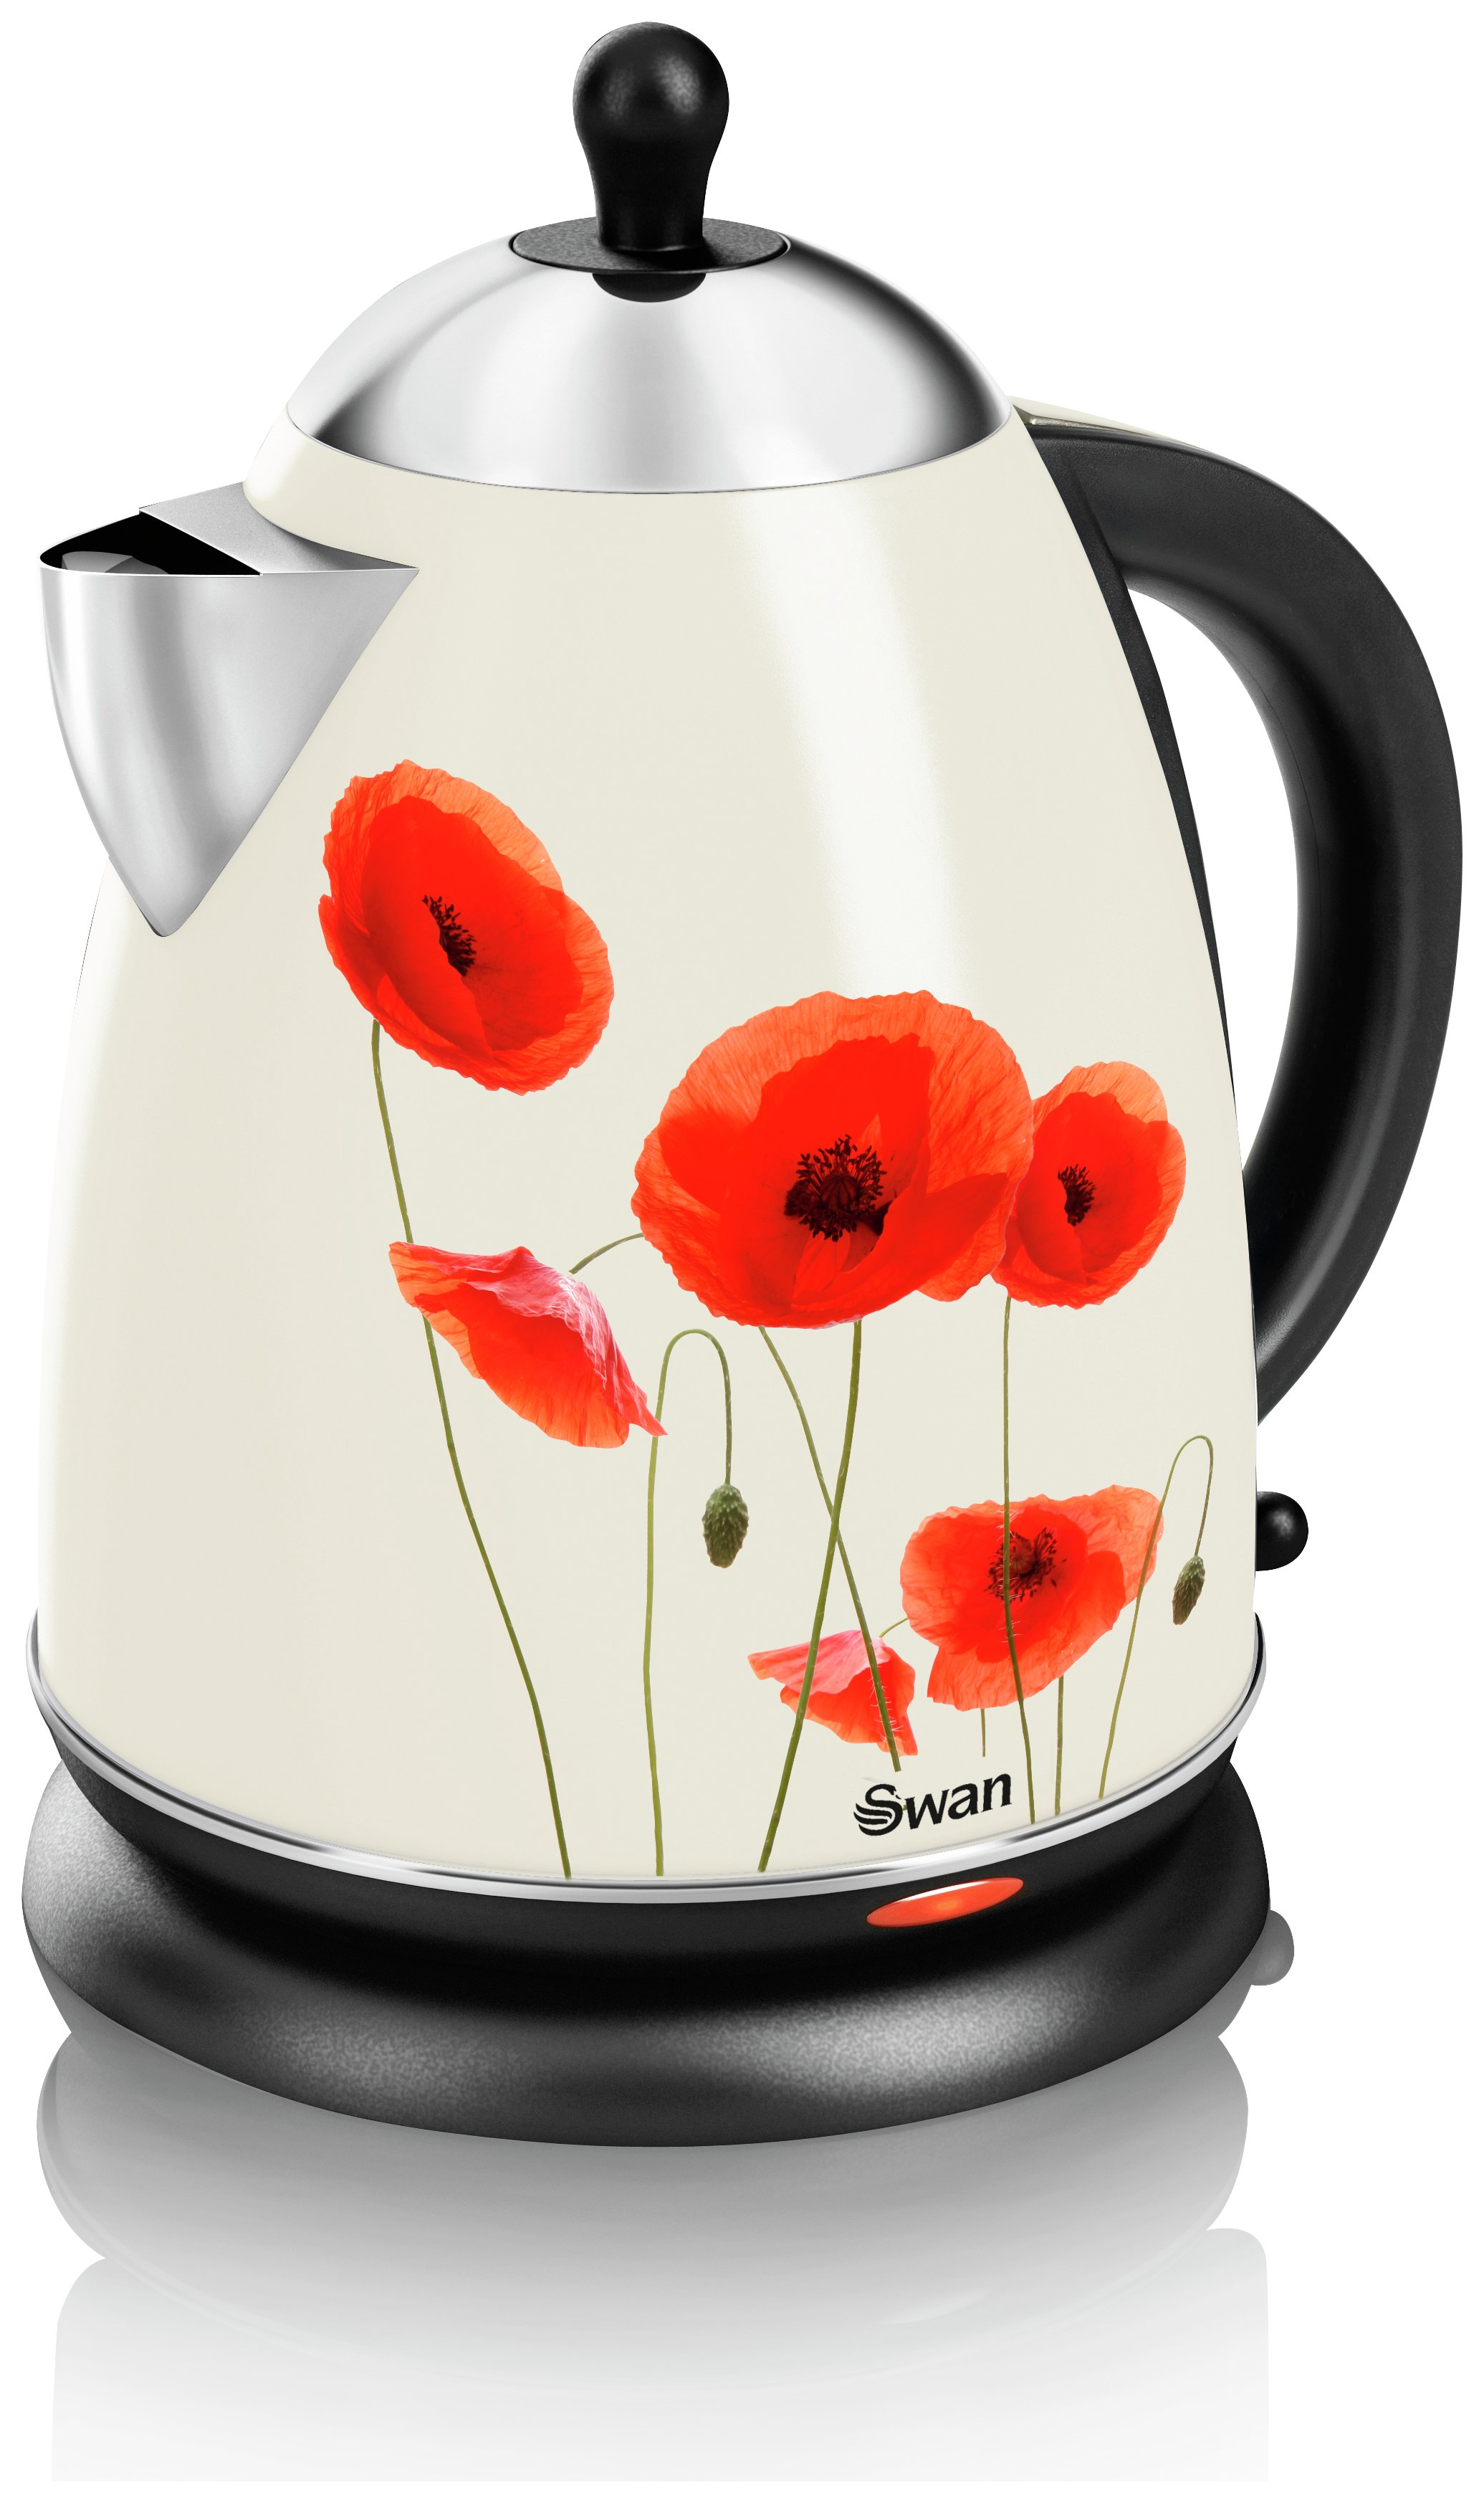 Image of Swan - Poppy Jug - Kettle